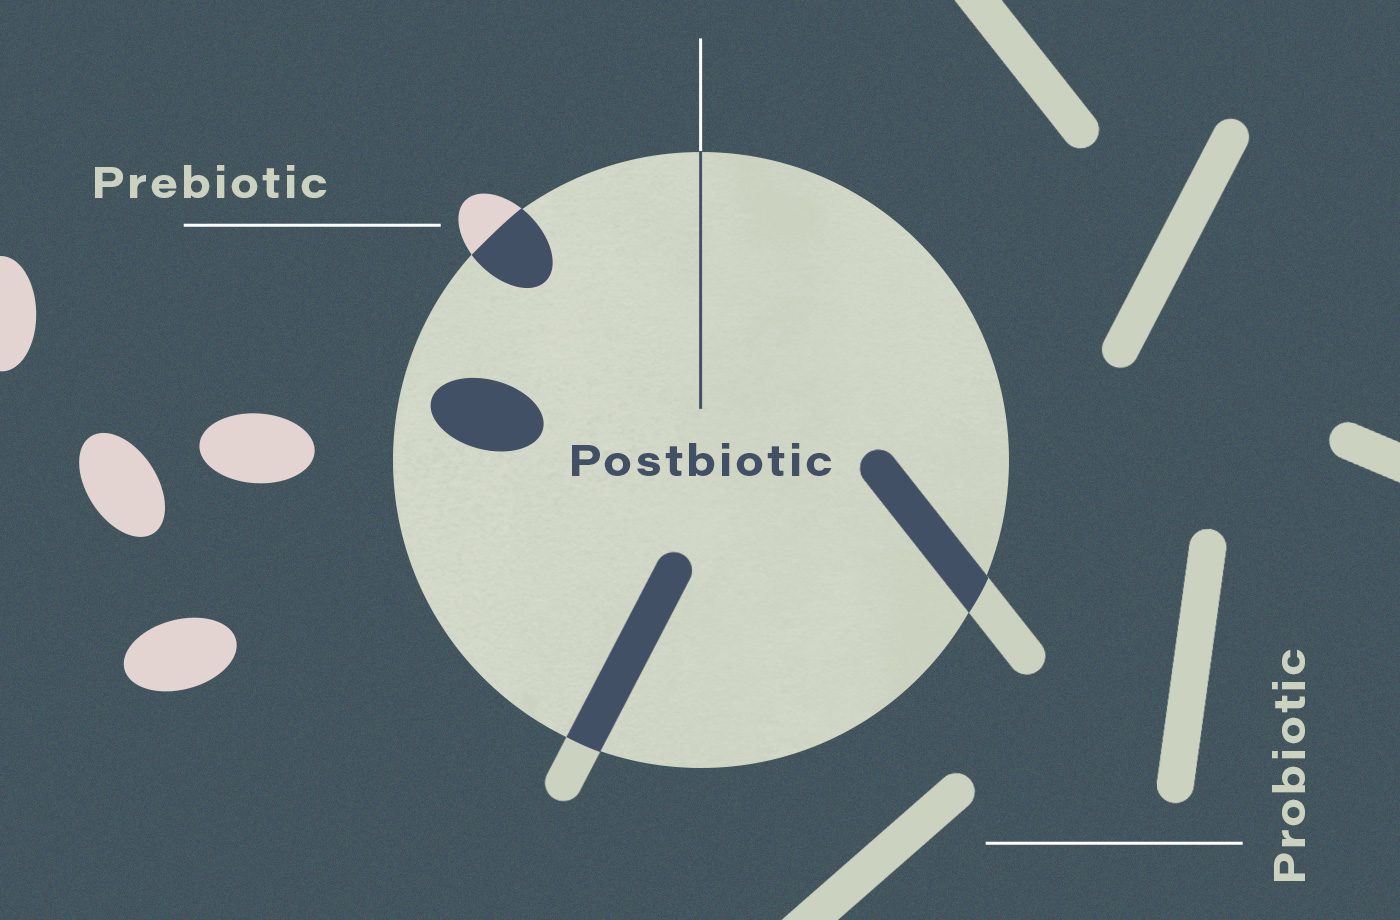 Thumbnail for Probiotics are cool and all, but have you heard about postbiotics?